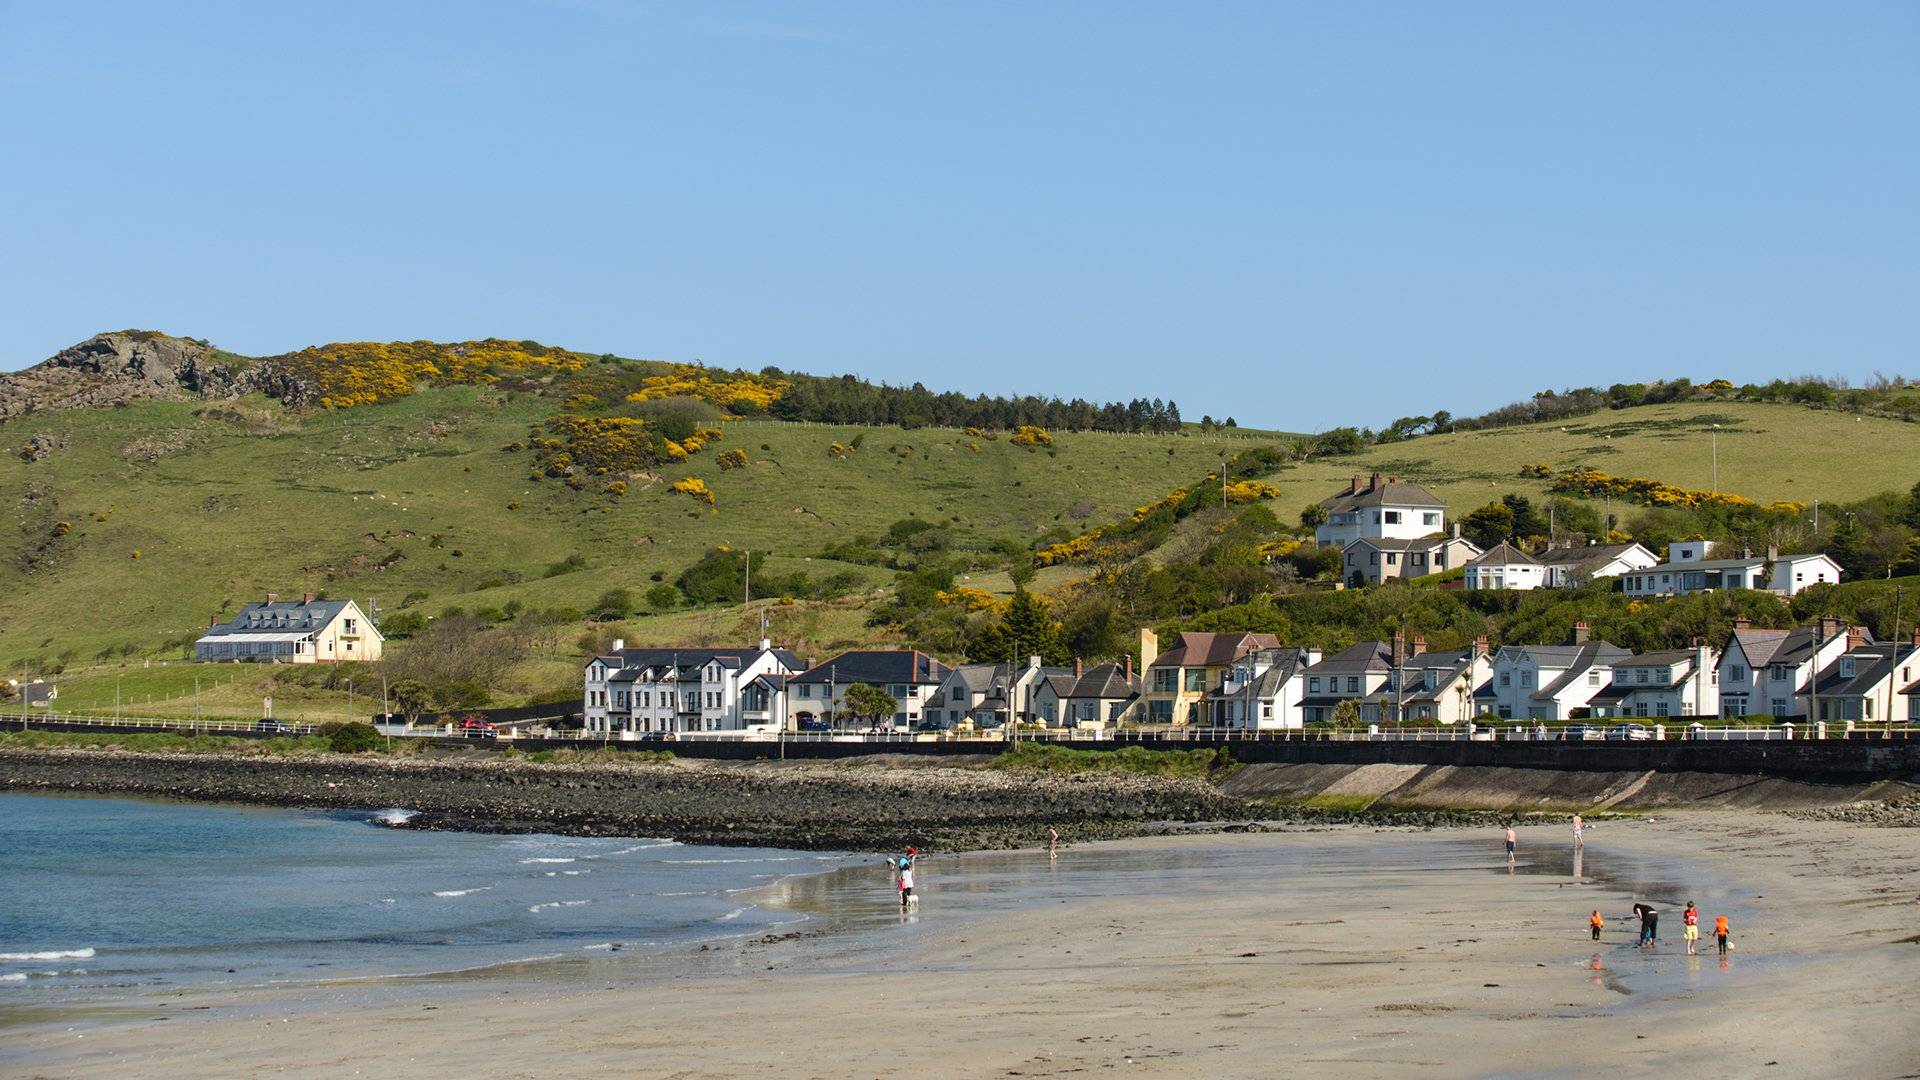 Ballygally self-catering apartments